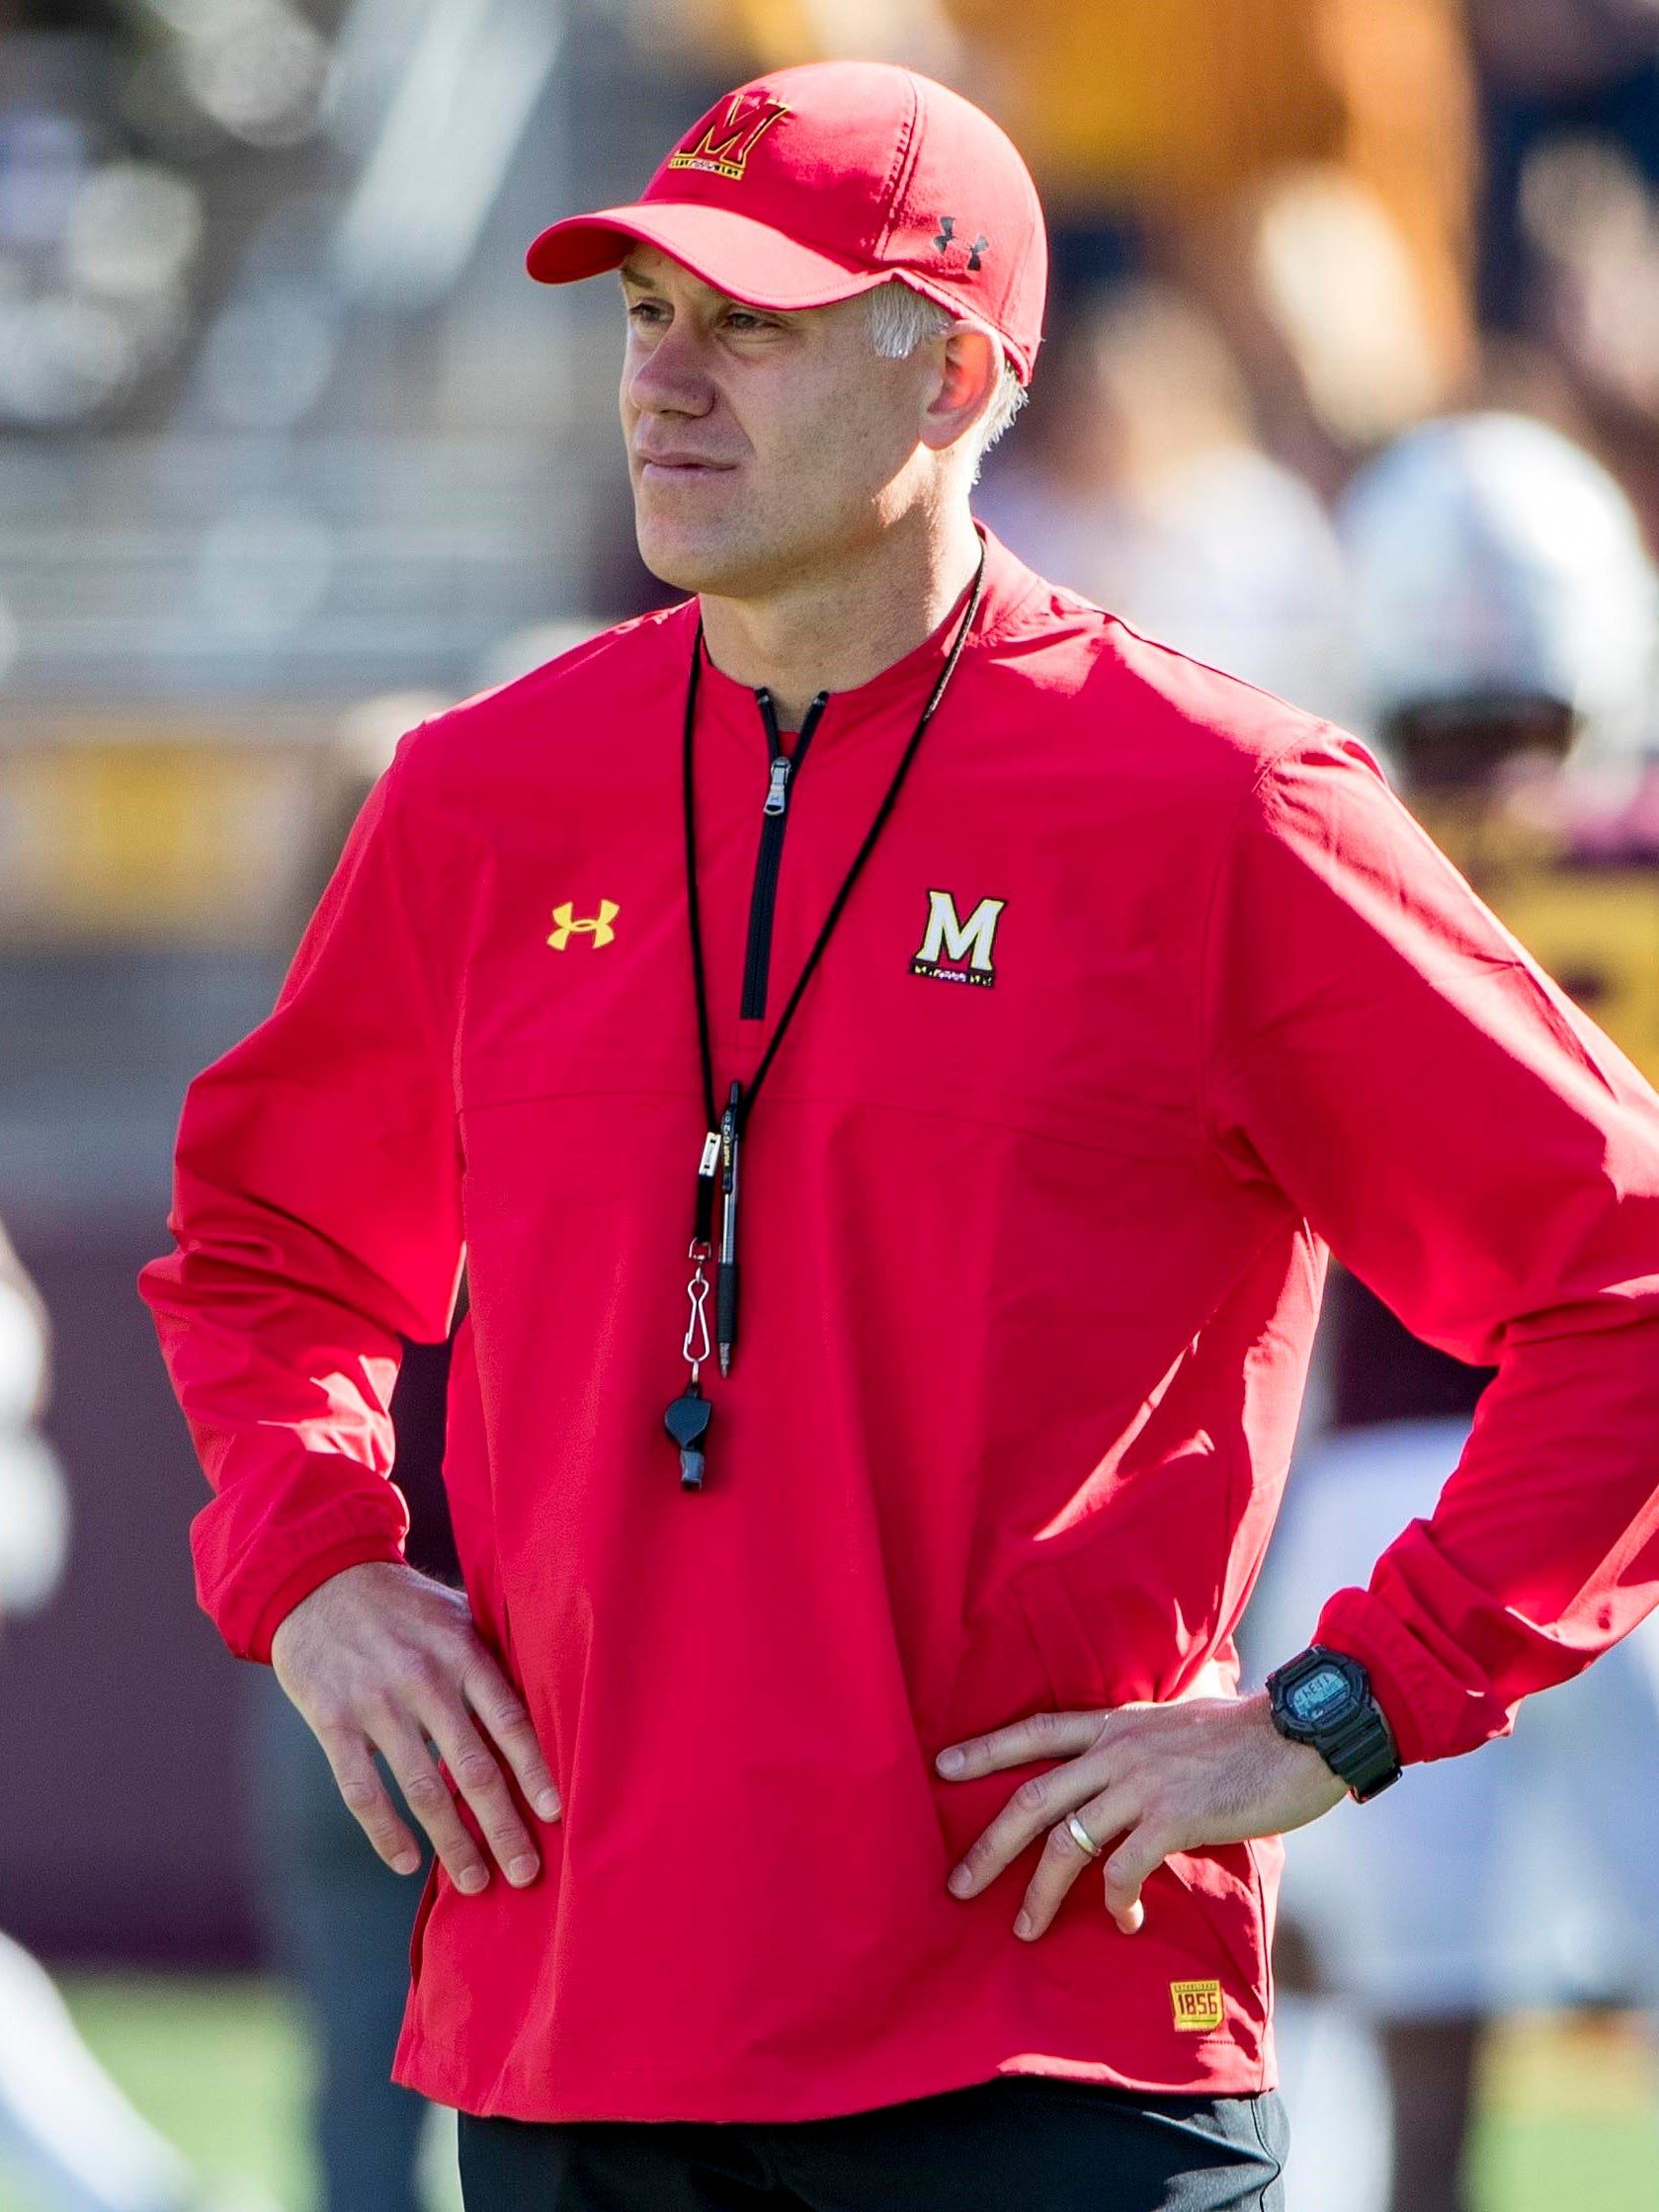 Maryland coach DJ Durkin stands on the sideline before his team's game against Minnesota.